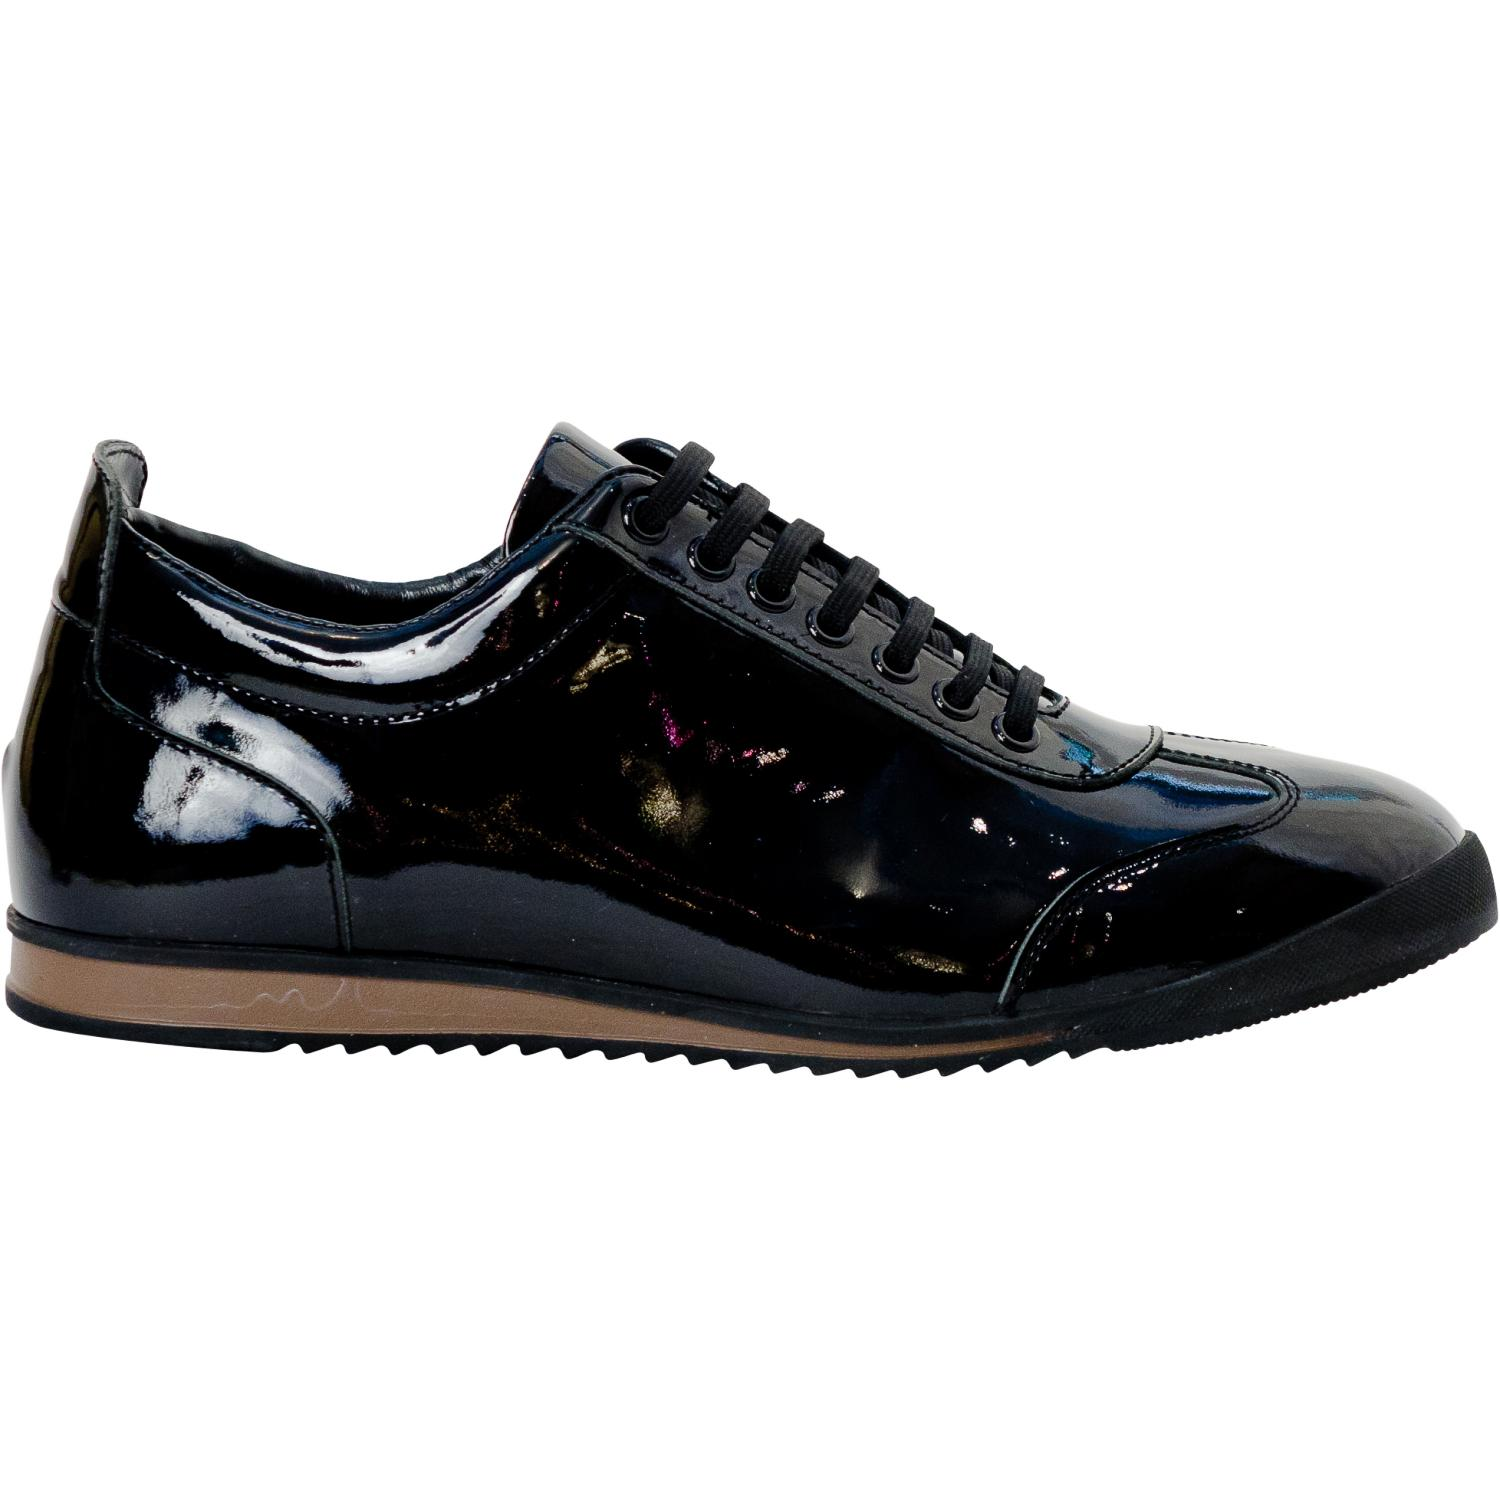 casual dress shoes for women photo - 1